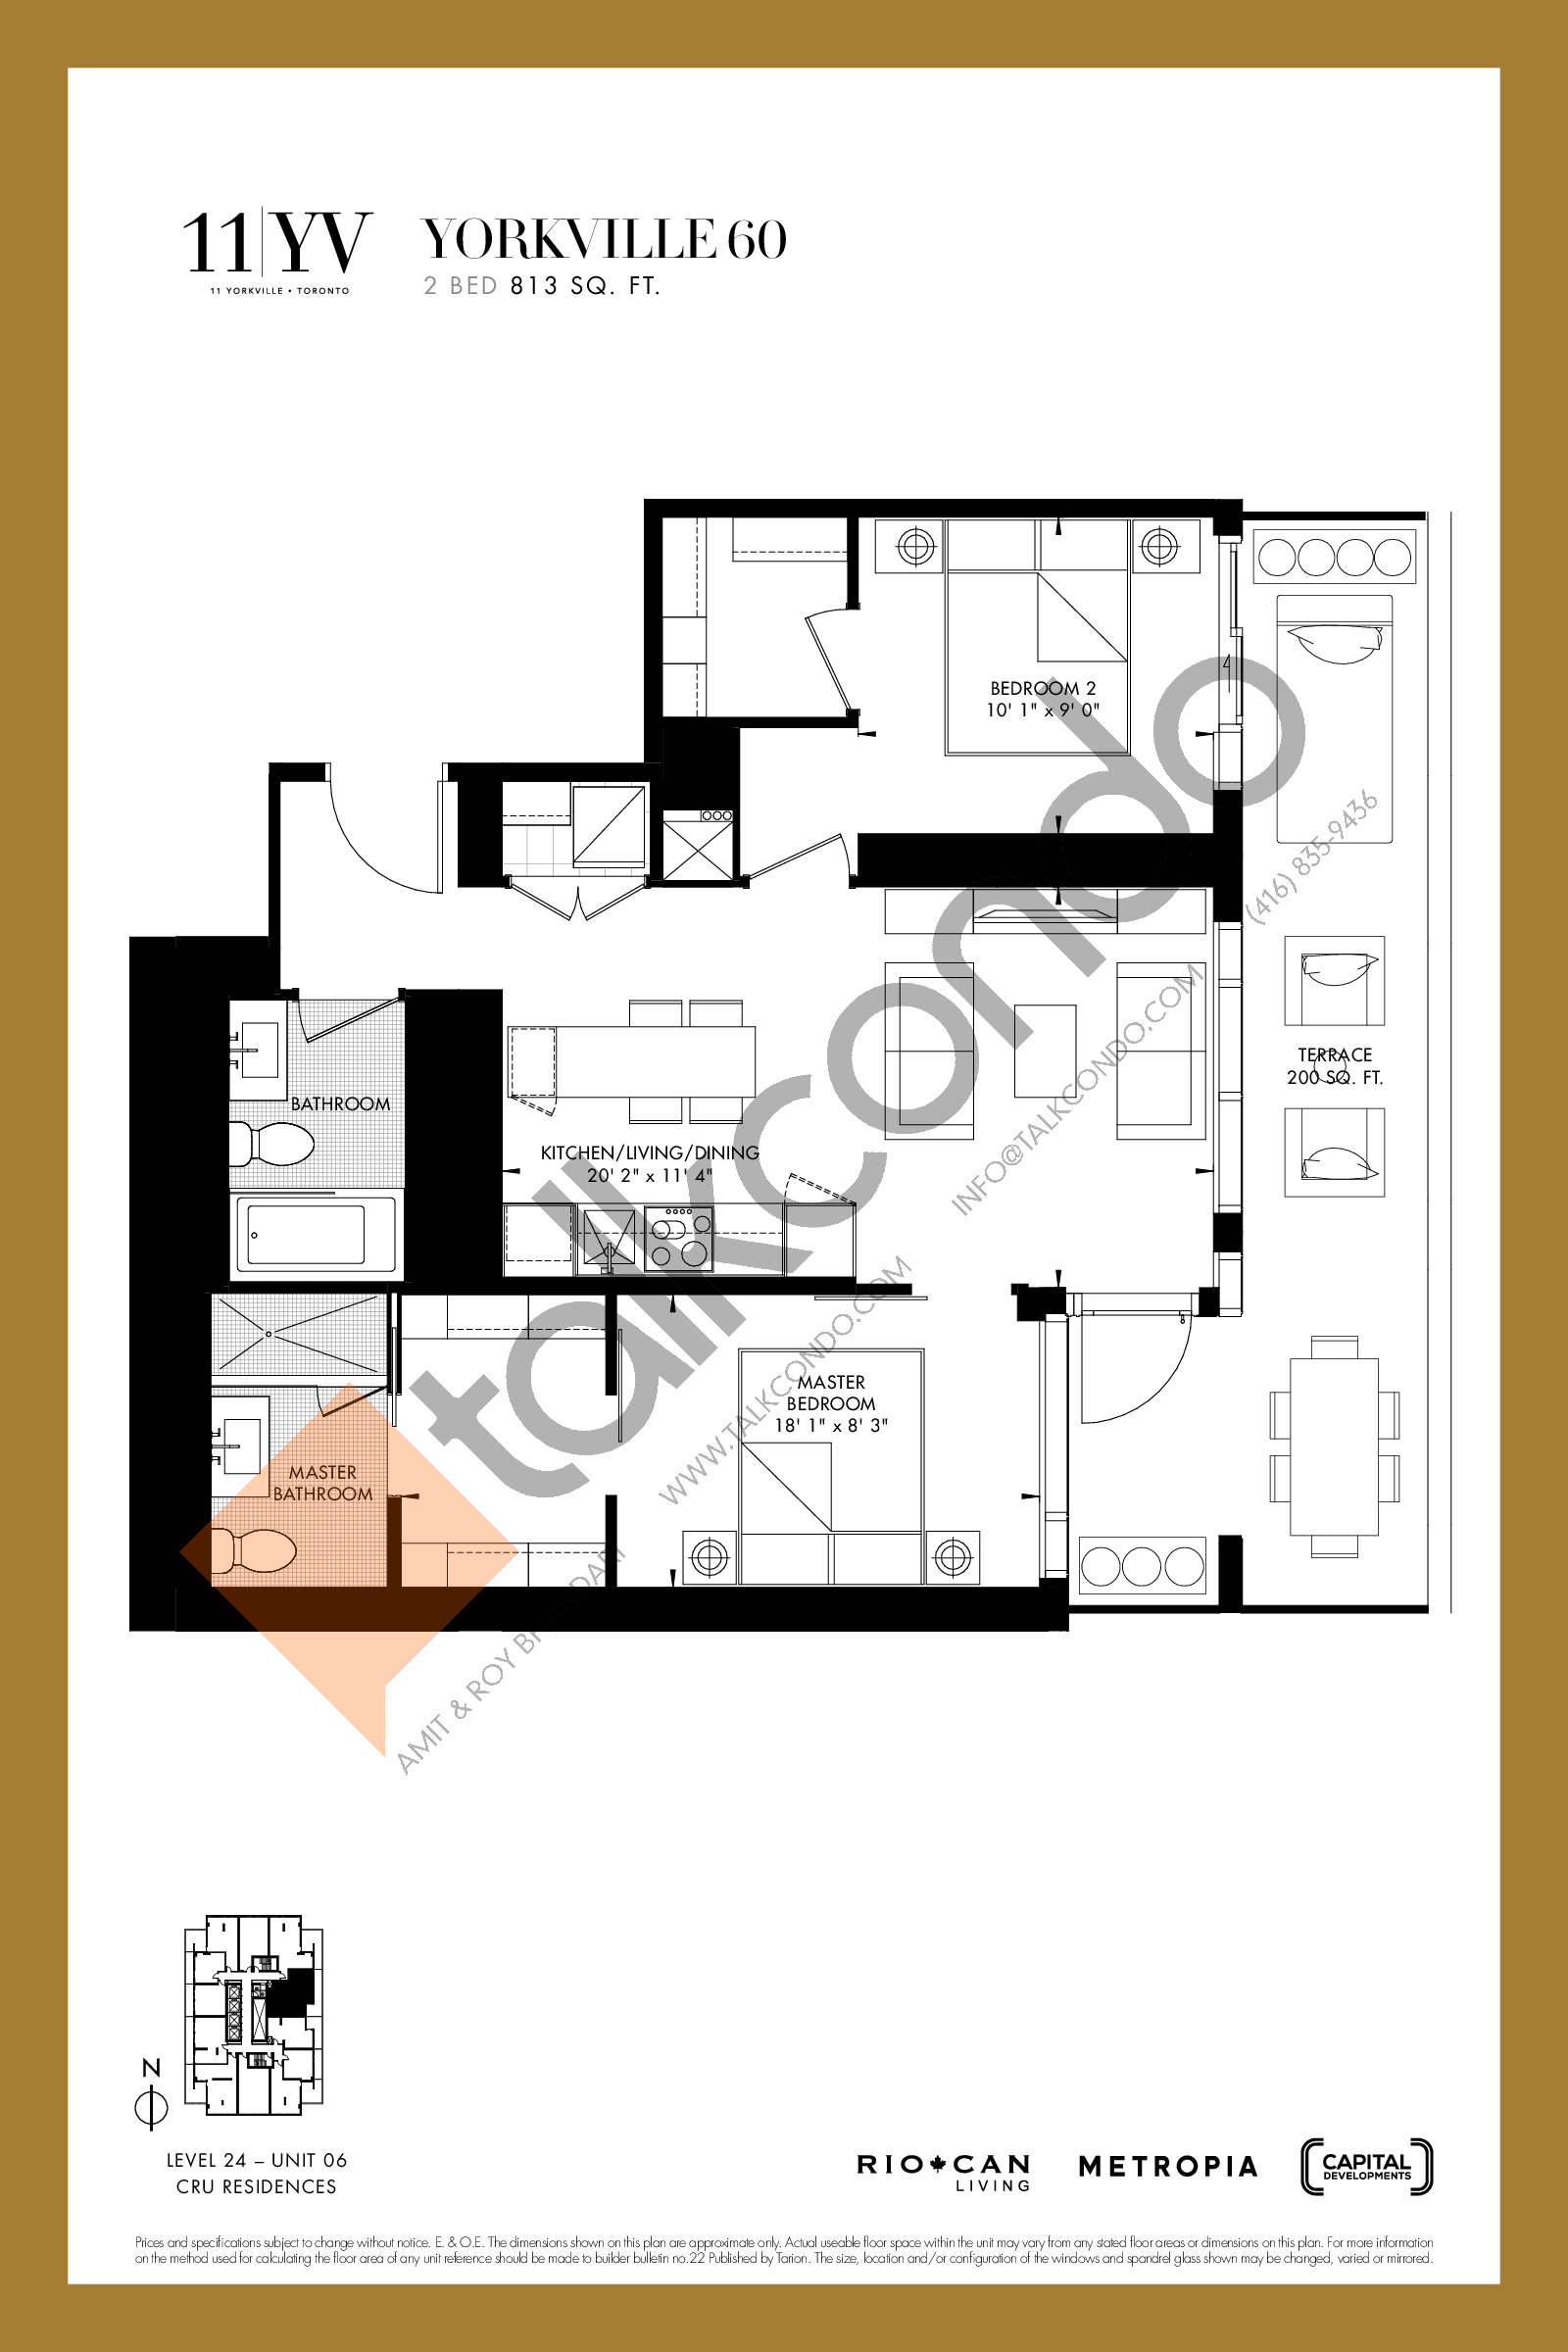 Yorkville 60 Floor Plan at 11YV Condos - 813 sq.ft